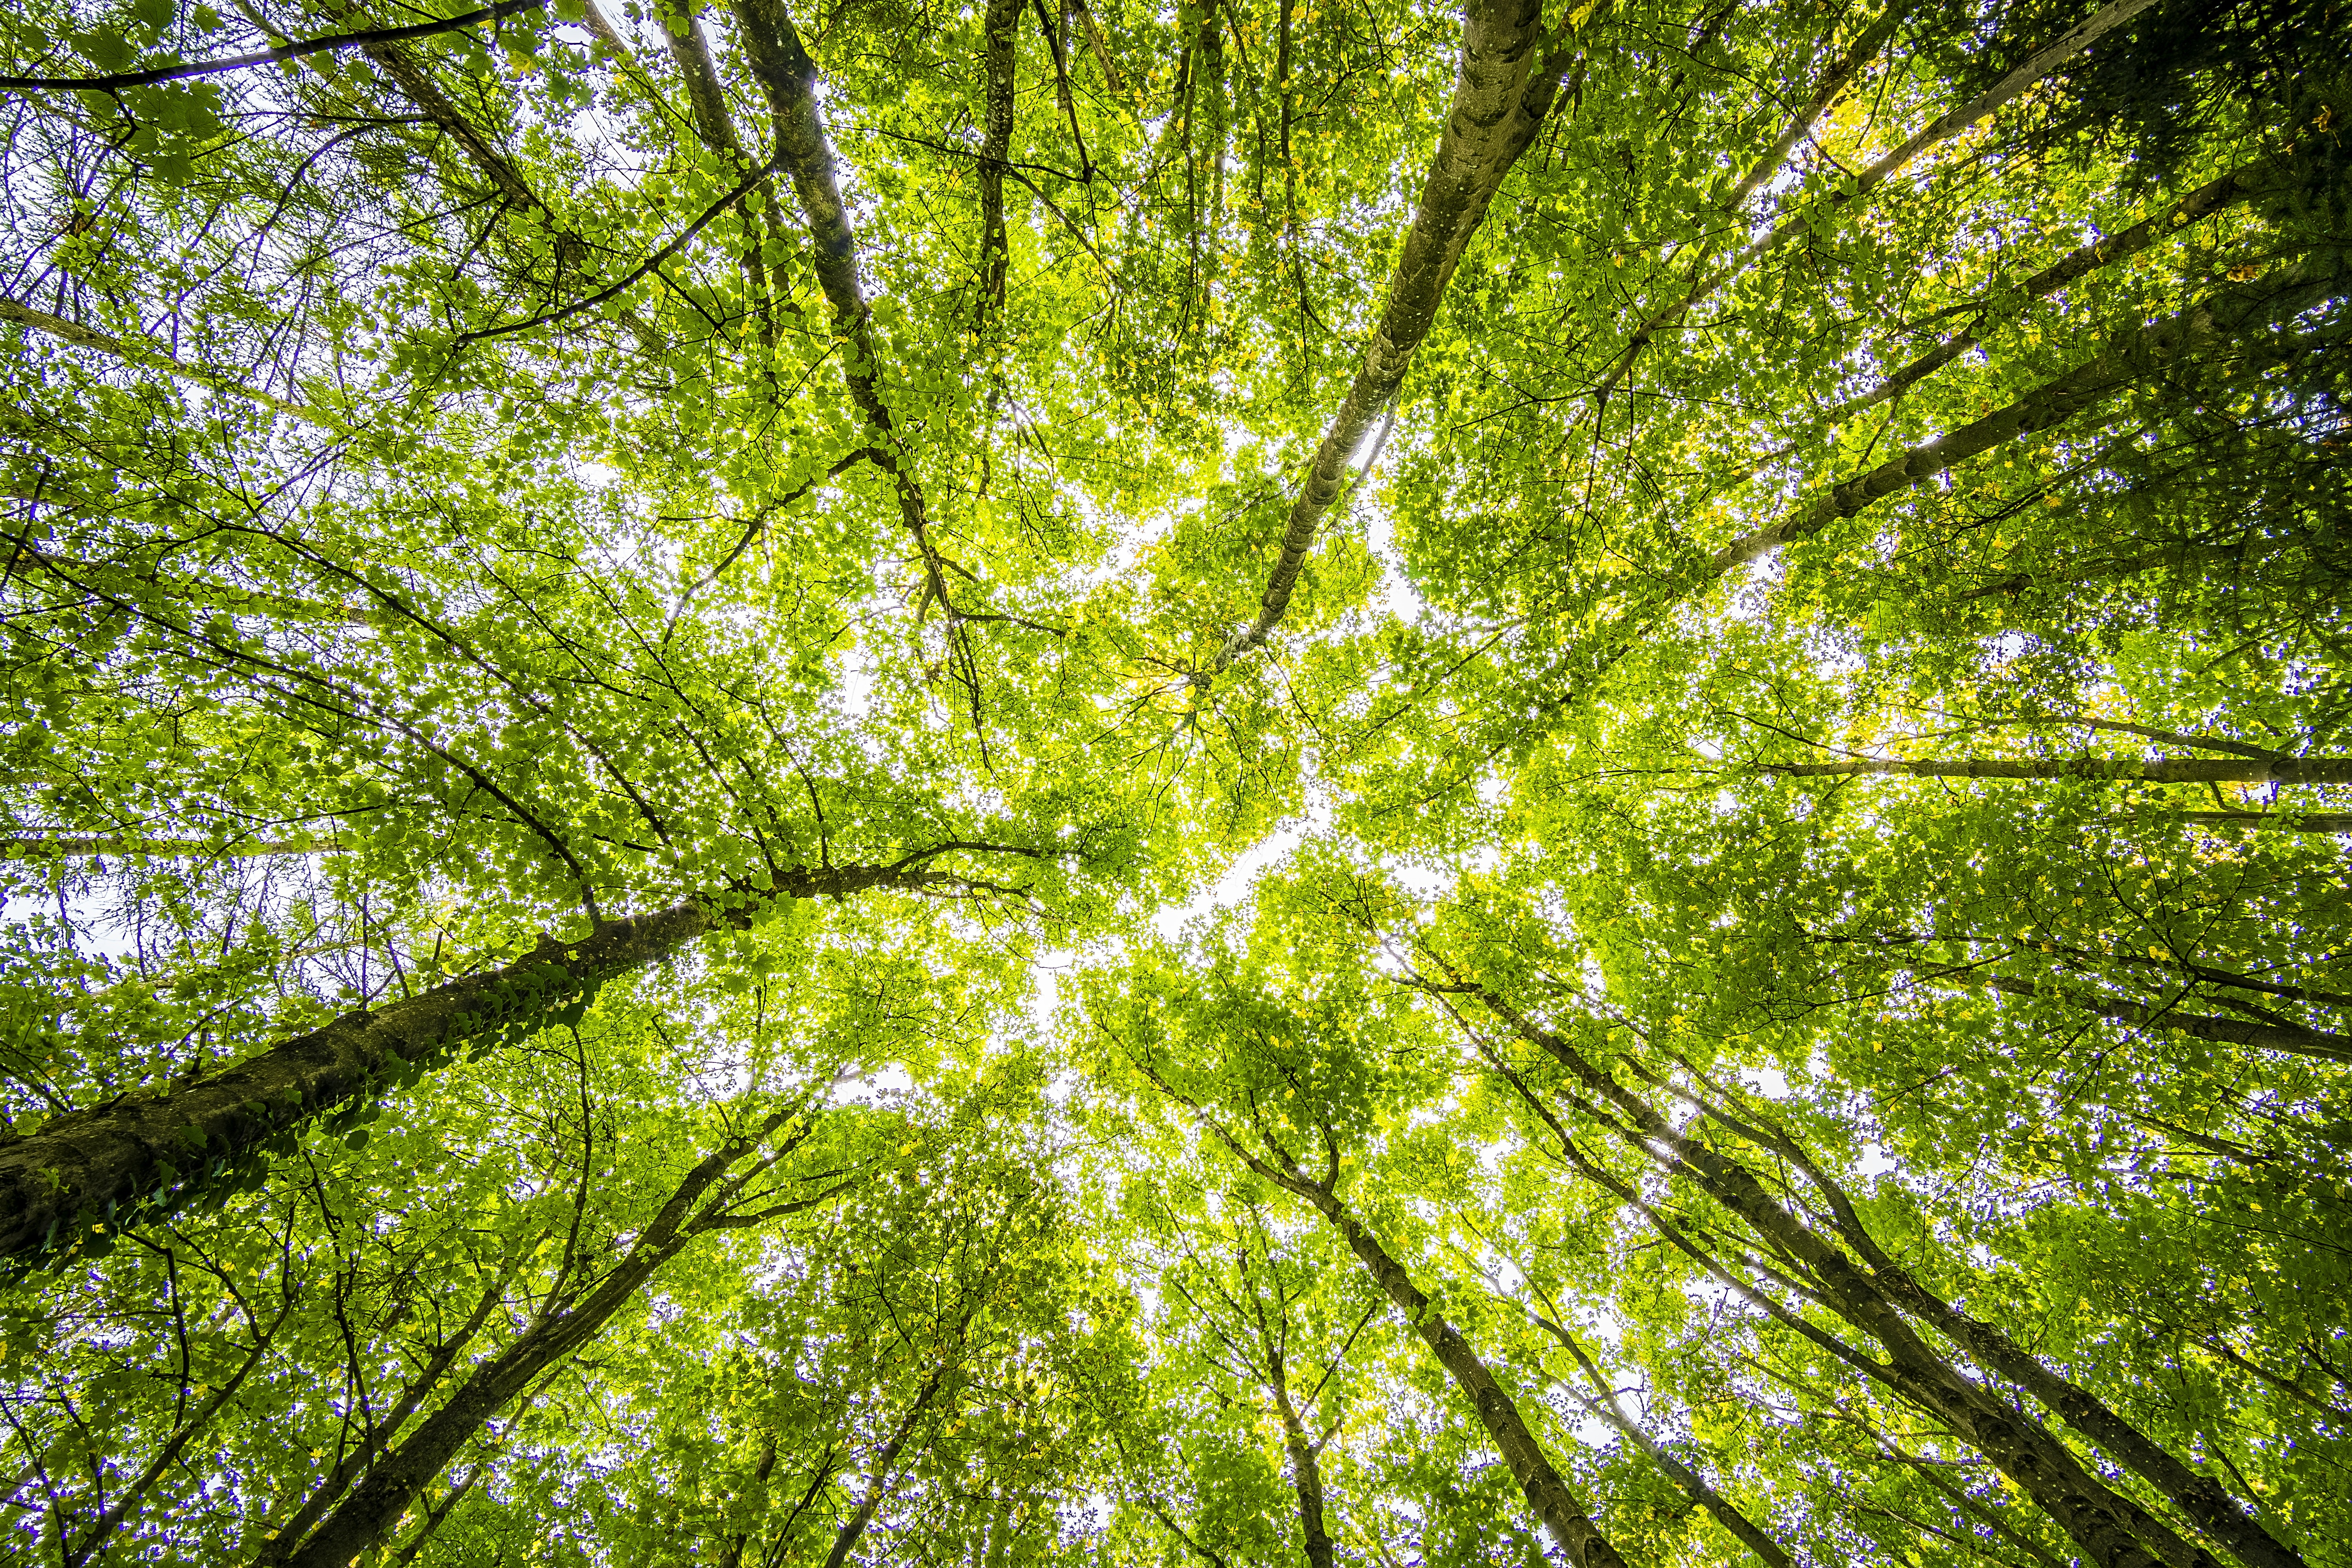 Worms Eyeview of Green Trees · Free Stock Photo